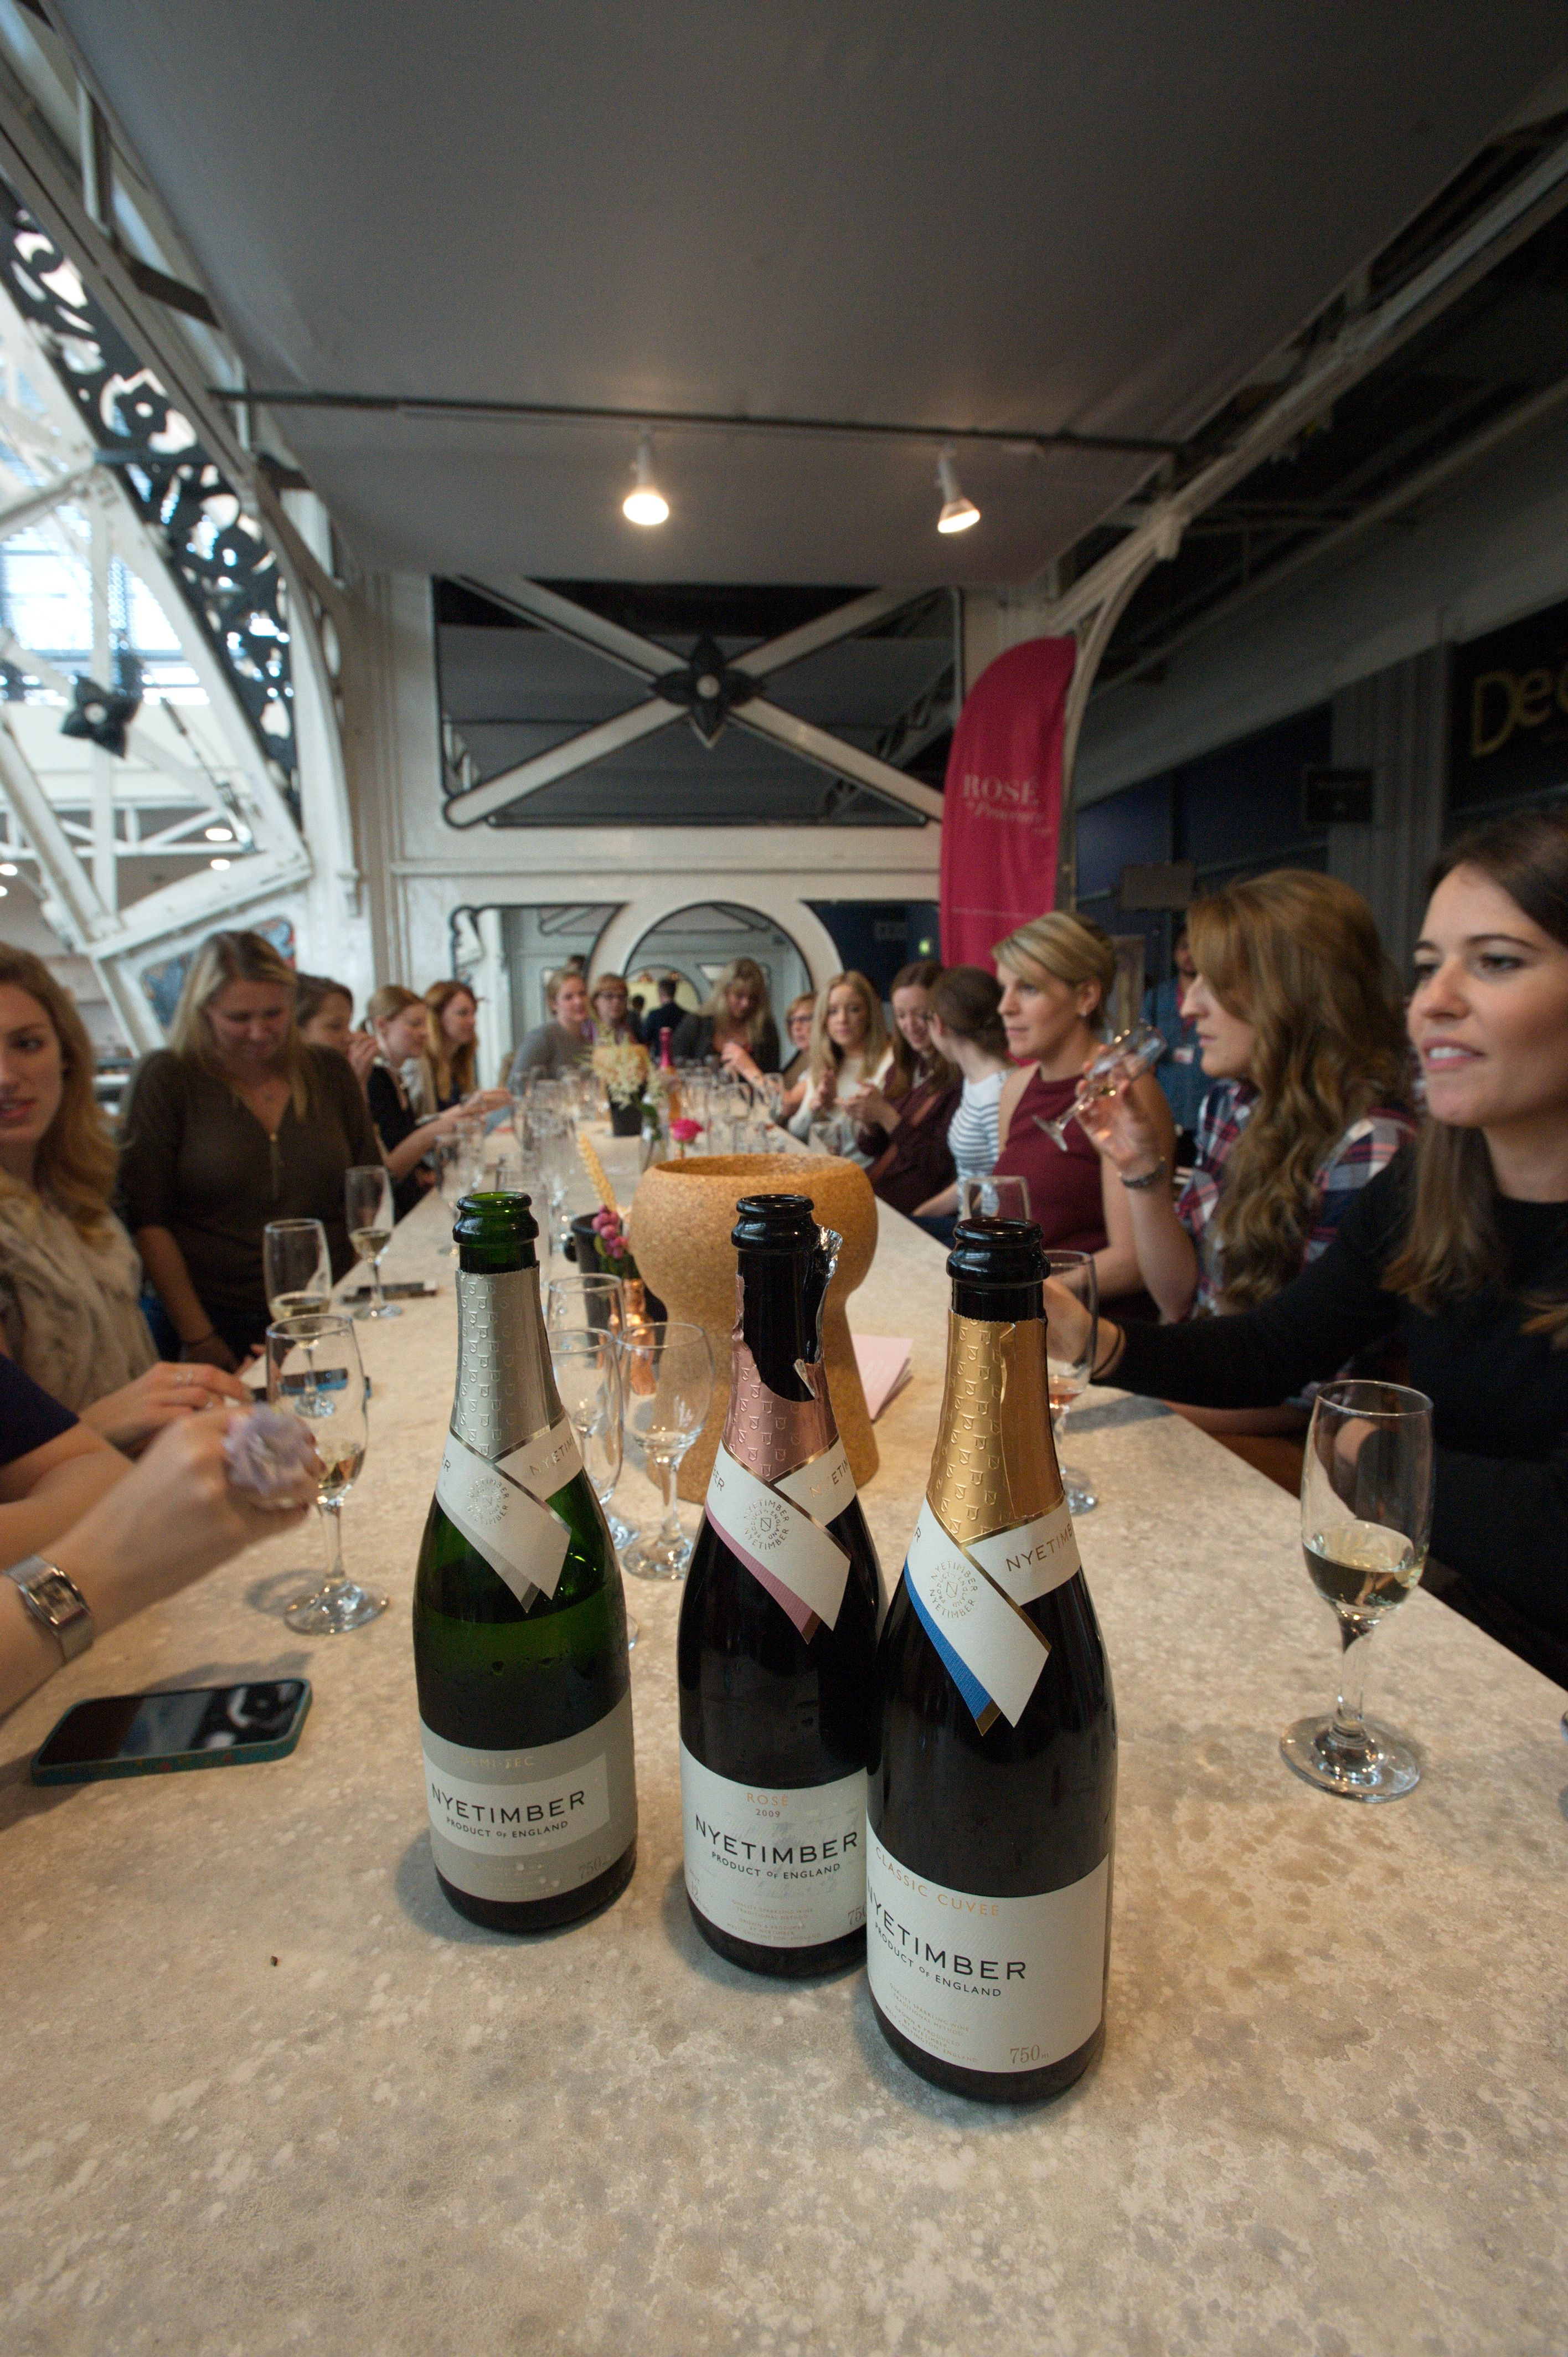 The Wine Workshop at #bridestheshow with Nyetimber